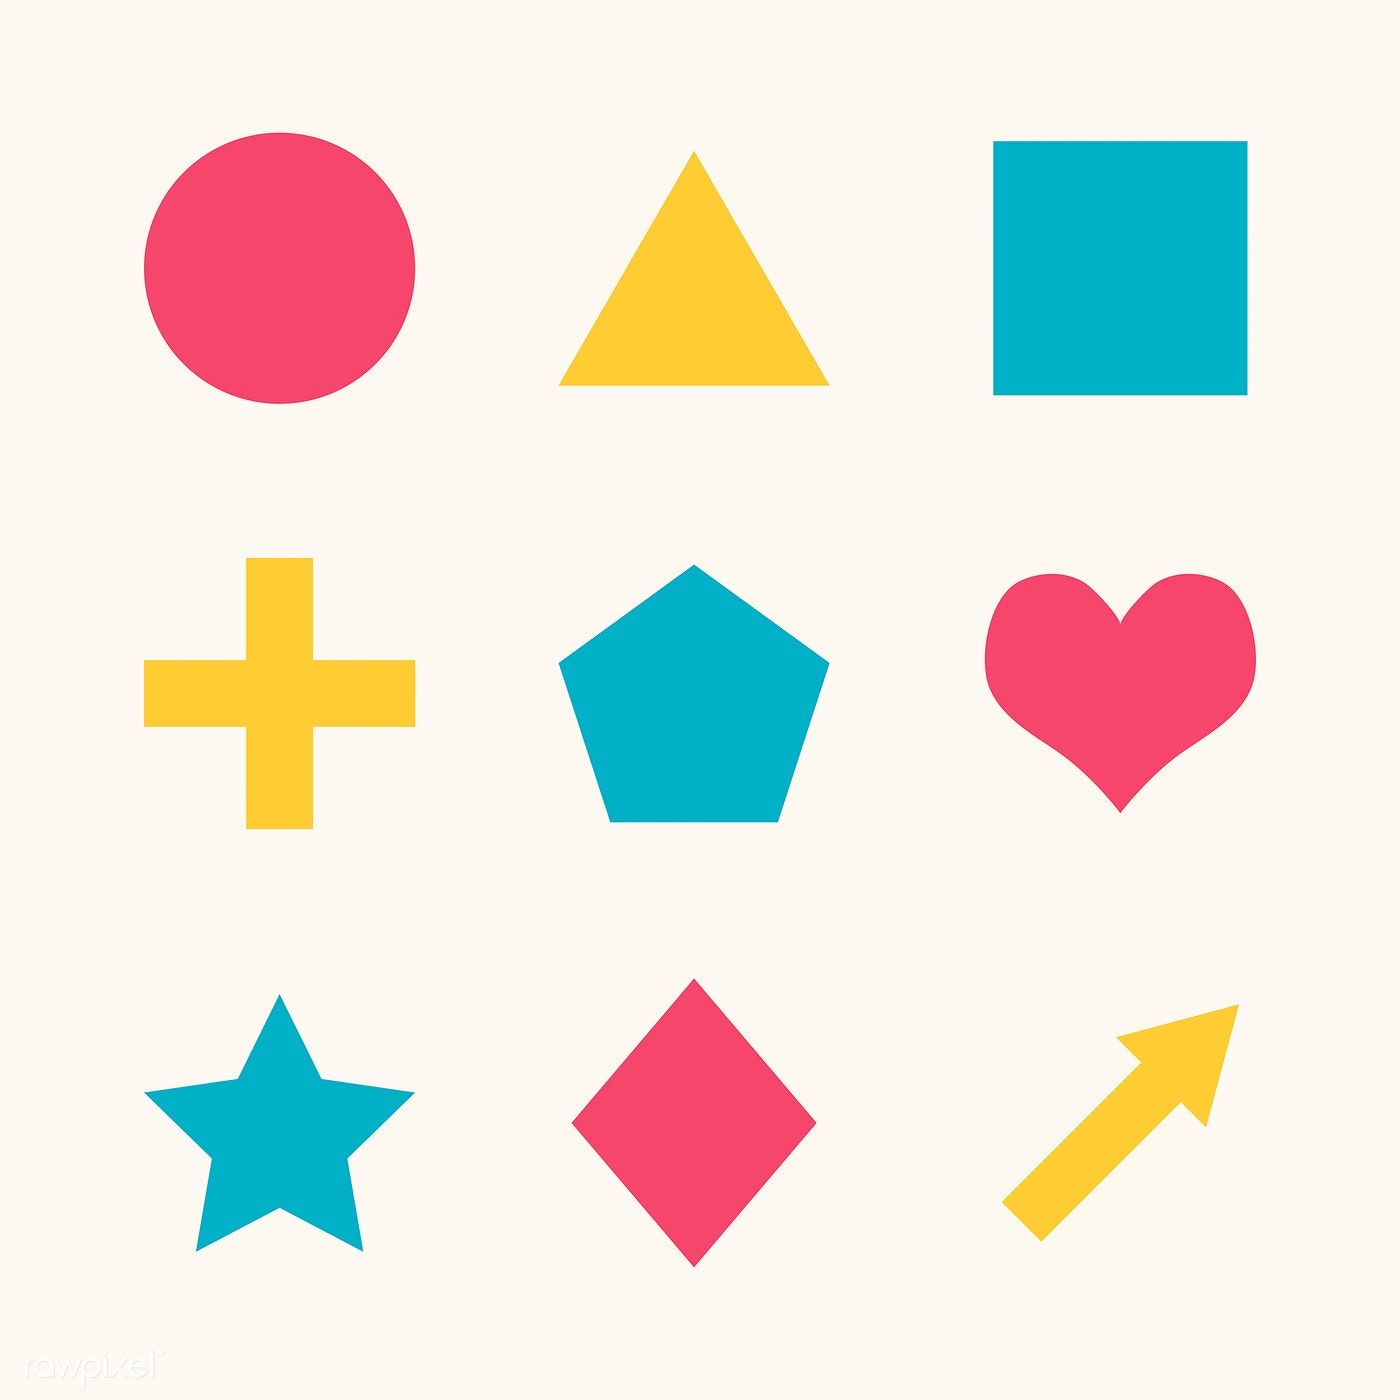 Colorful Flat Geometric Shapes Set Vector Free Image By Rawpixel